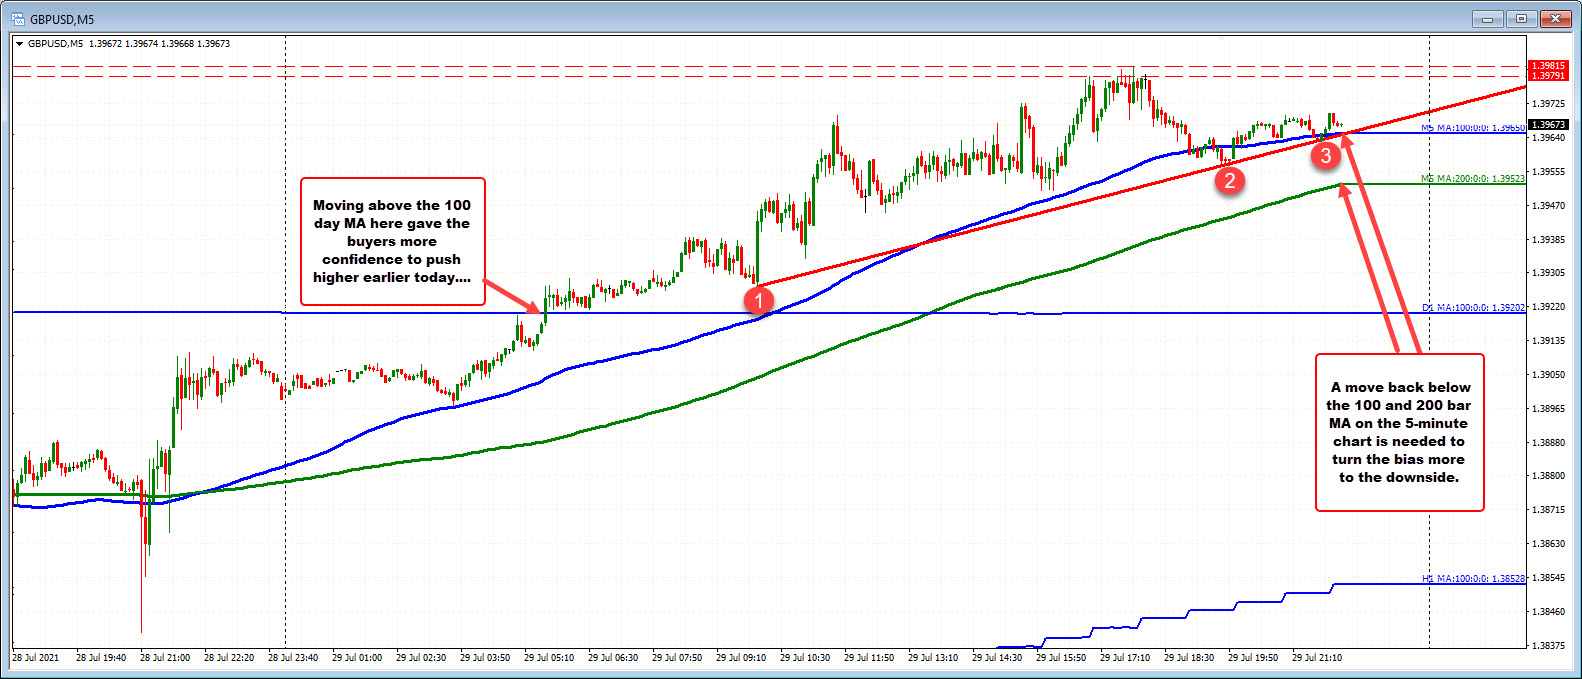 Price trades above and below the 100 bar MA on the 5-minute chart.